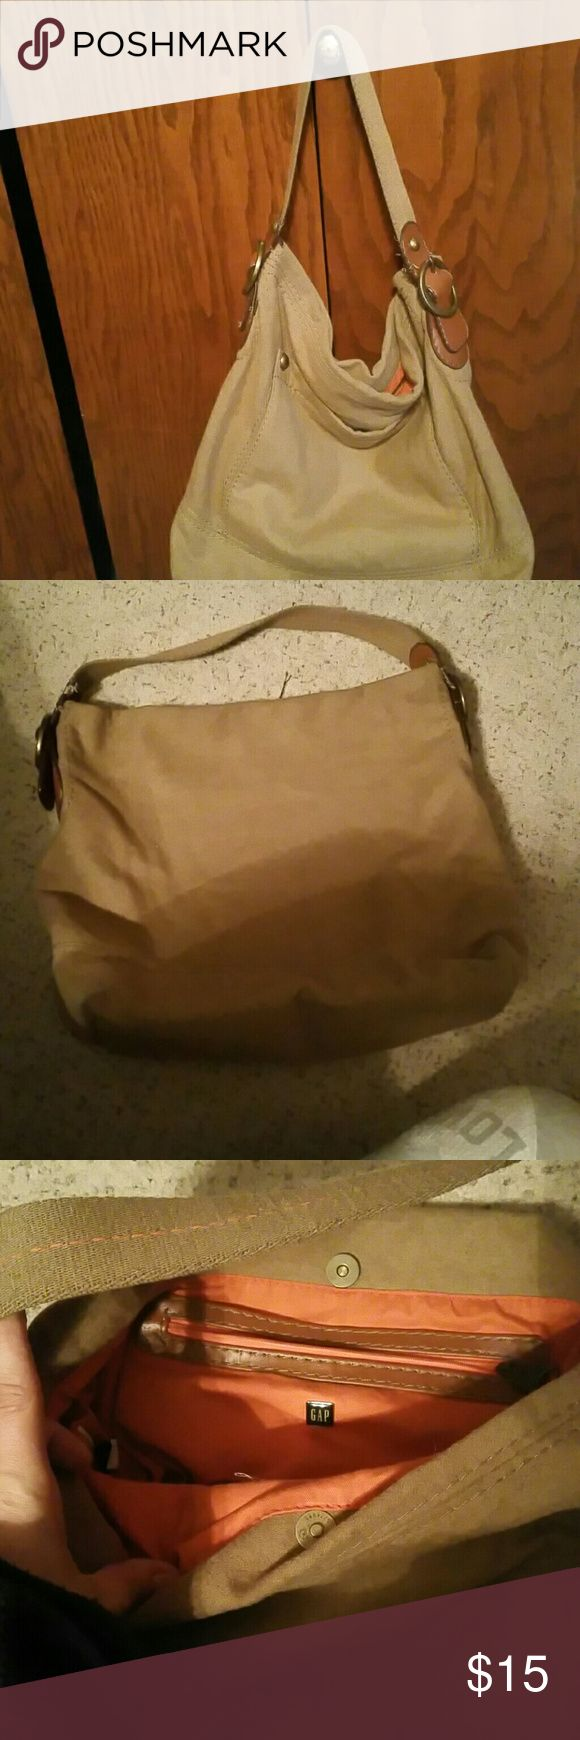 Gap purse This is a super cute Gap brand purse. It is in good condition.  It has a snap closure. Pocket on outside of purse and pockets inside. Purse measures 16 wide by 15 tall and a 6 inch handle. GAP Bags